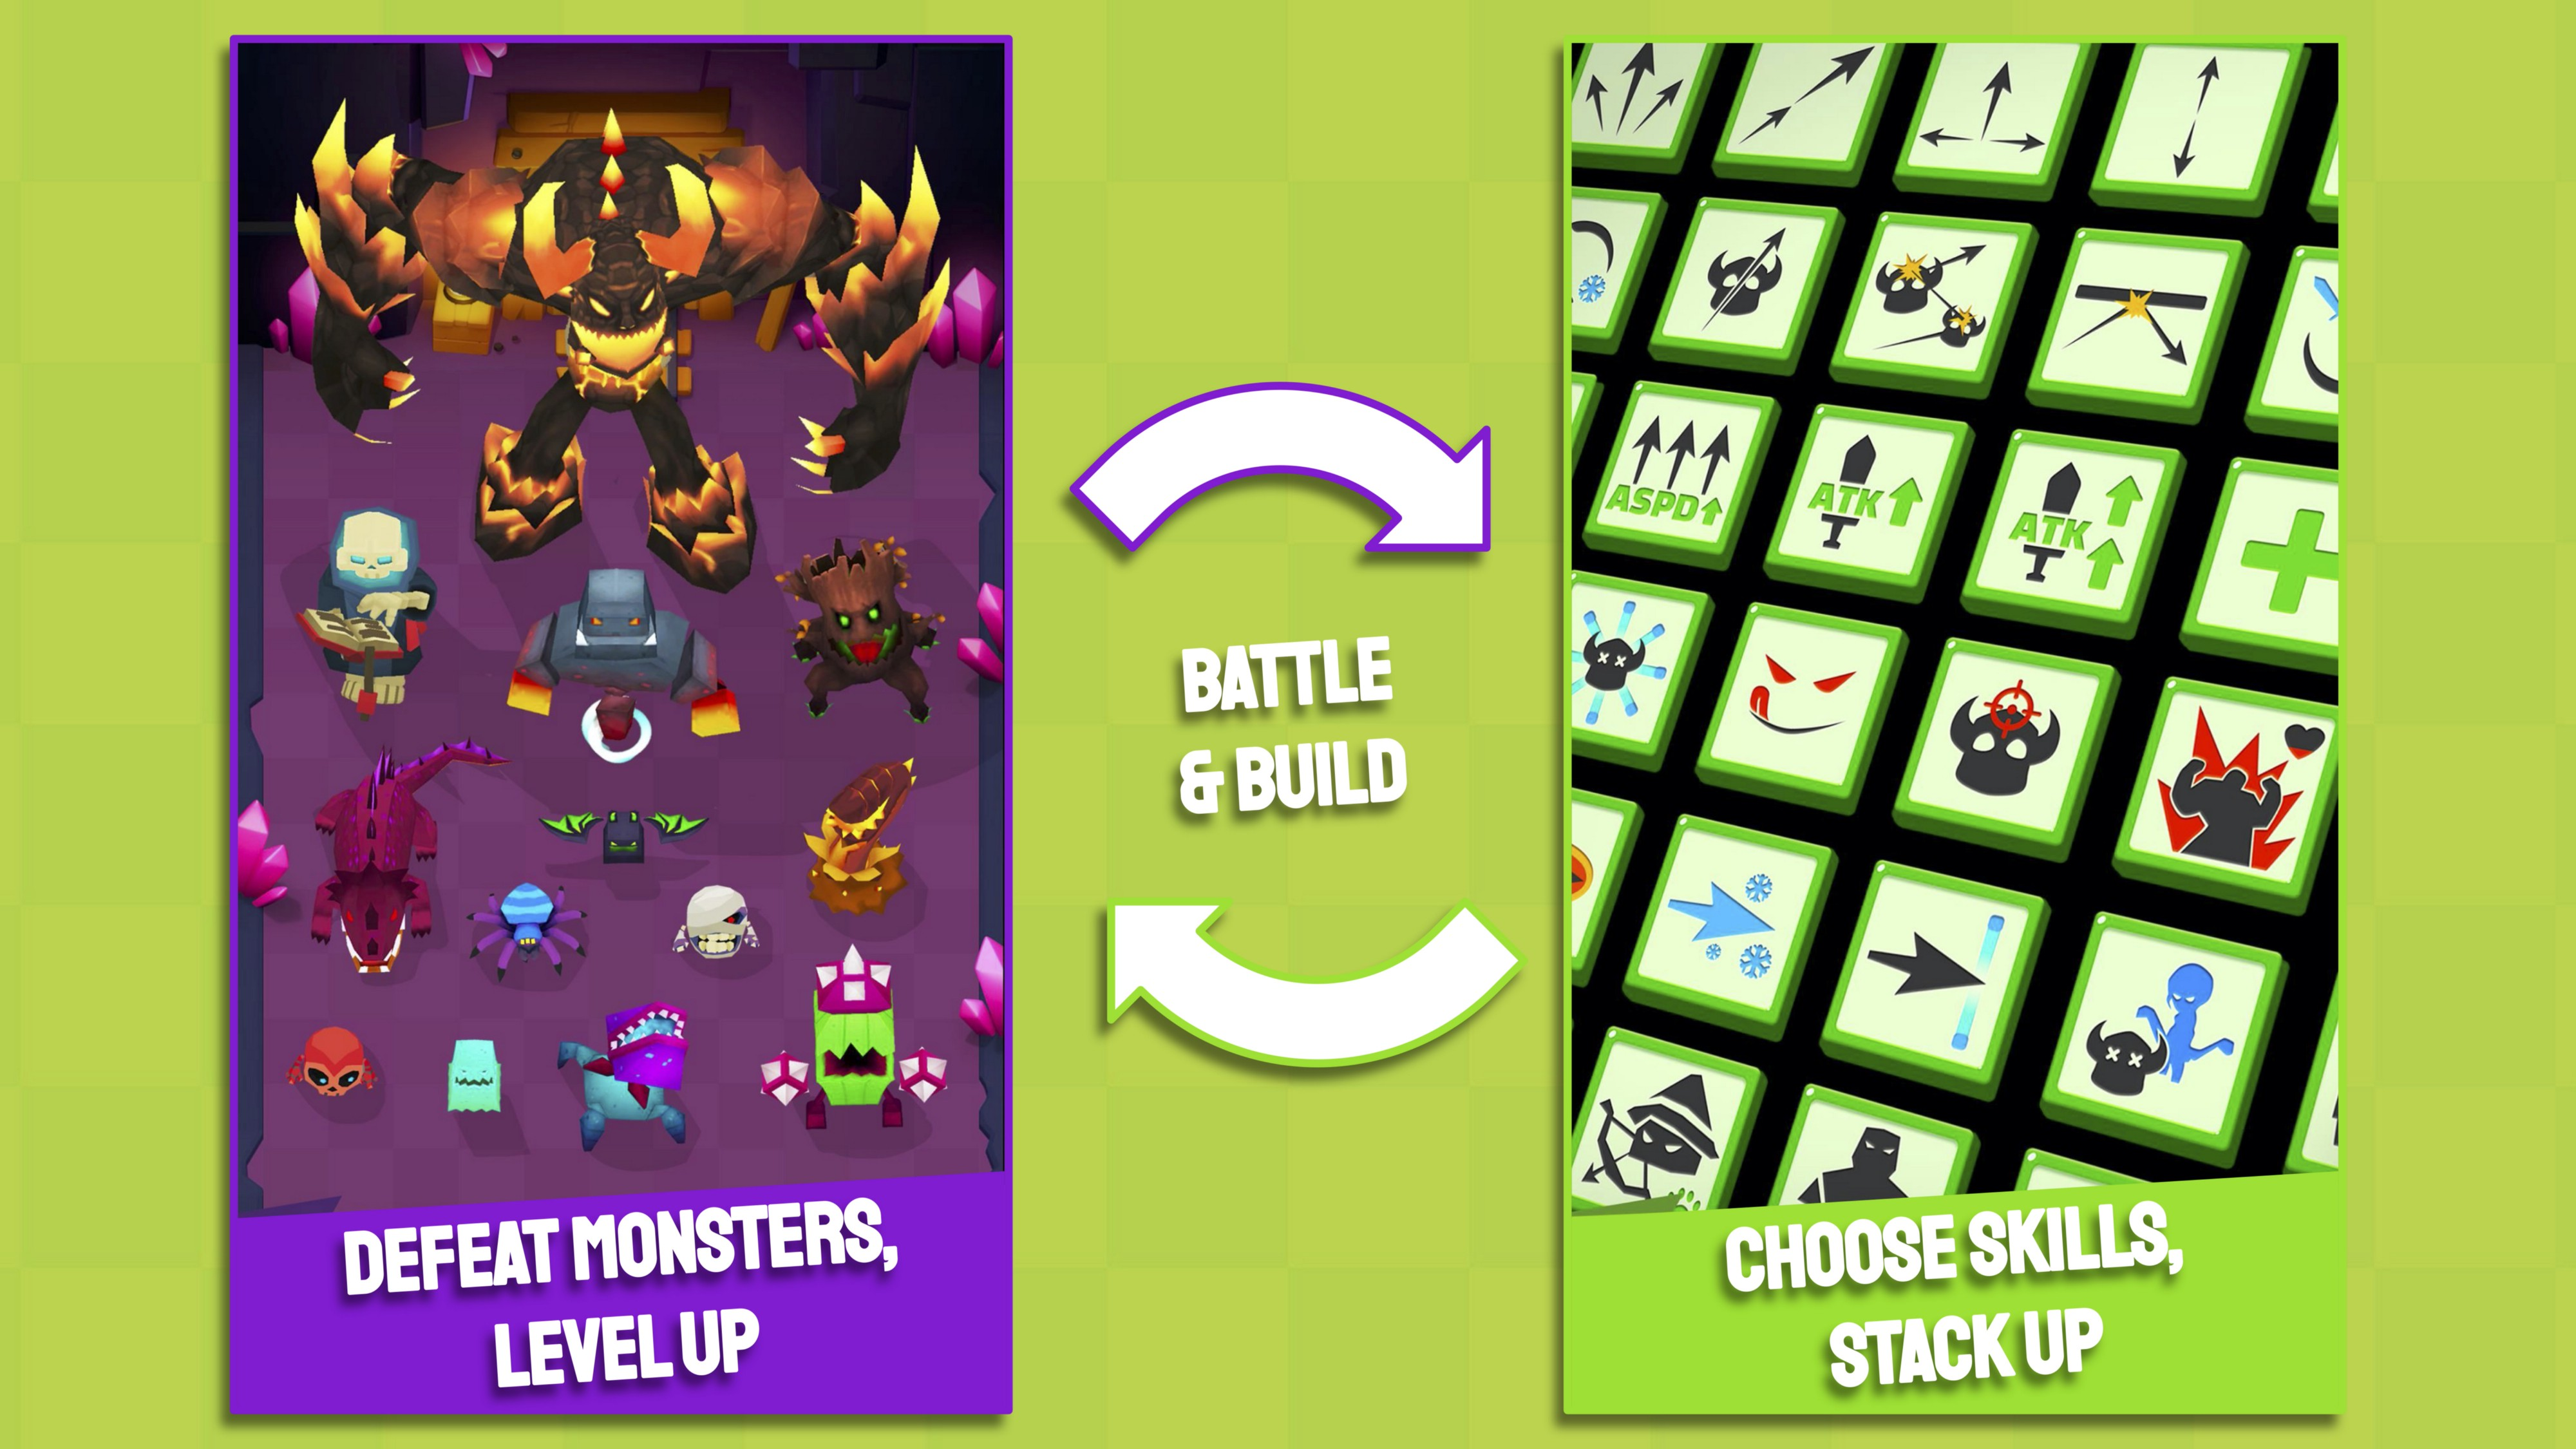 Archero battle and build reward-loop inside battles to engage mobile players